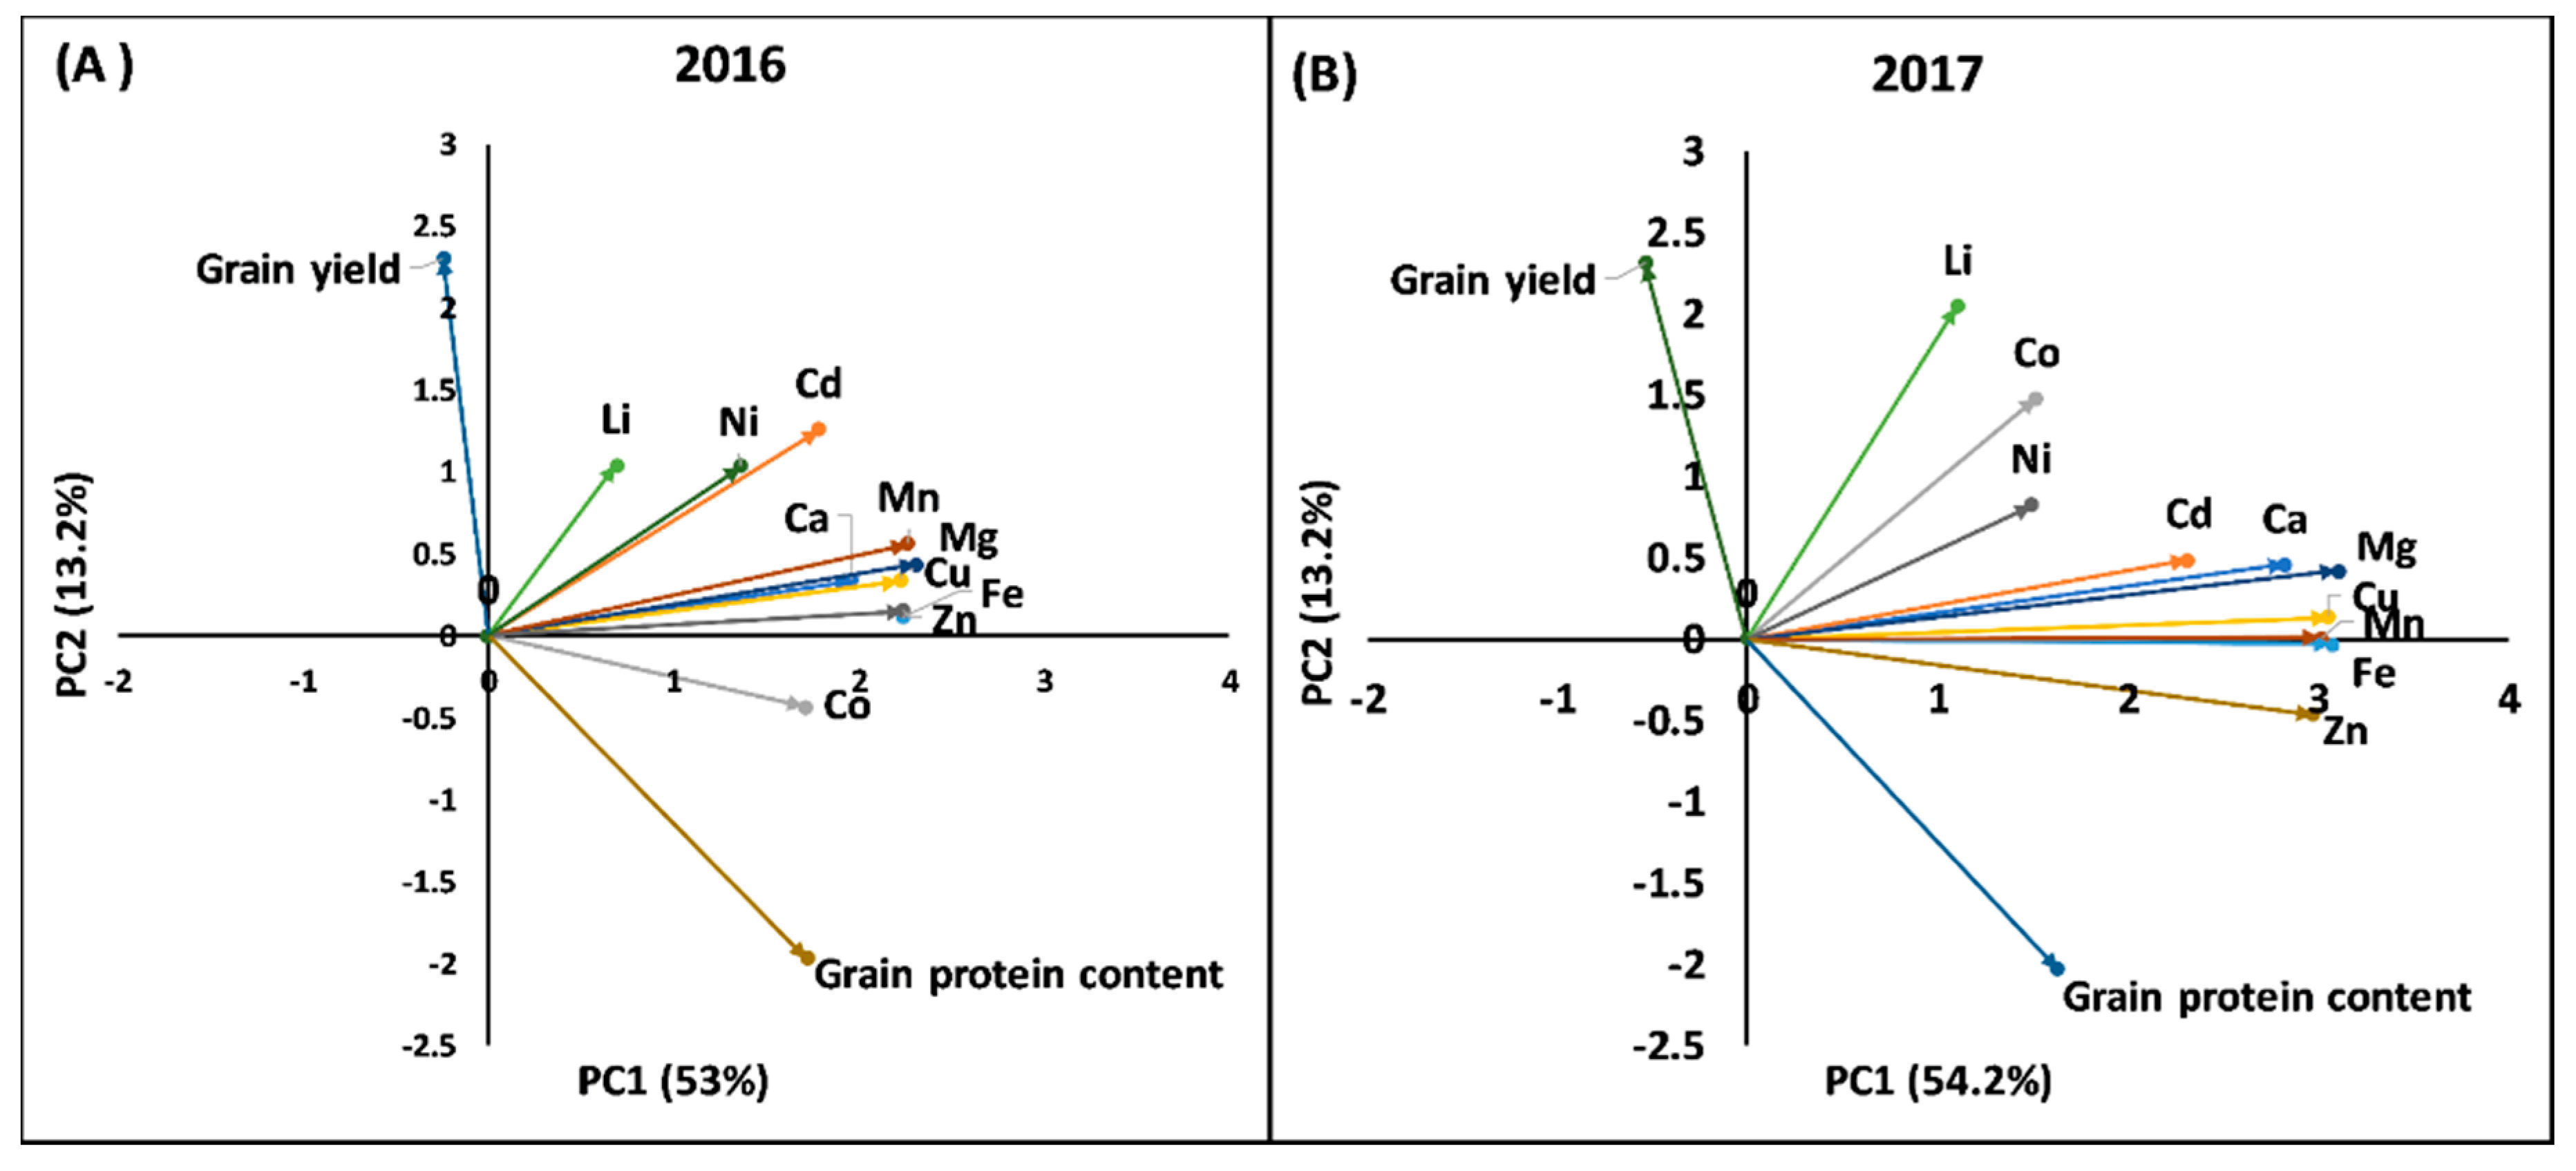 Ijms Free Full Text Genome Wide Association Study Reveals Novel Seed Diagram And Function Also Wheat Grain Cross Section Additionally 19 03237 G001